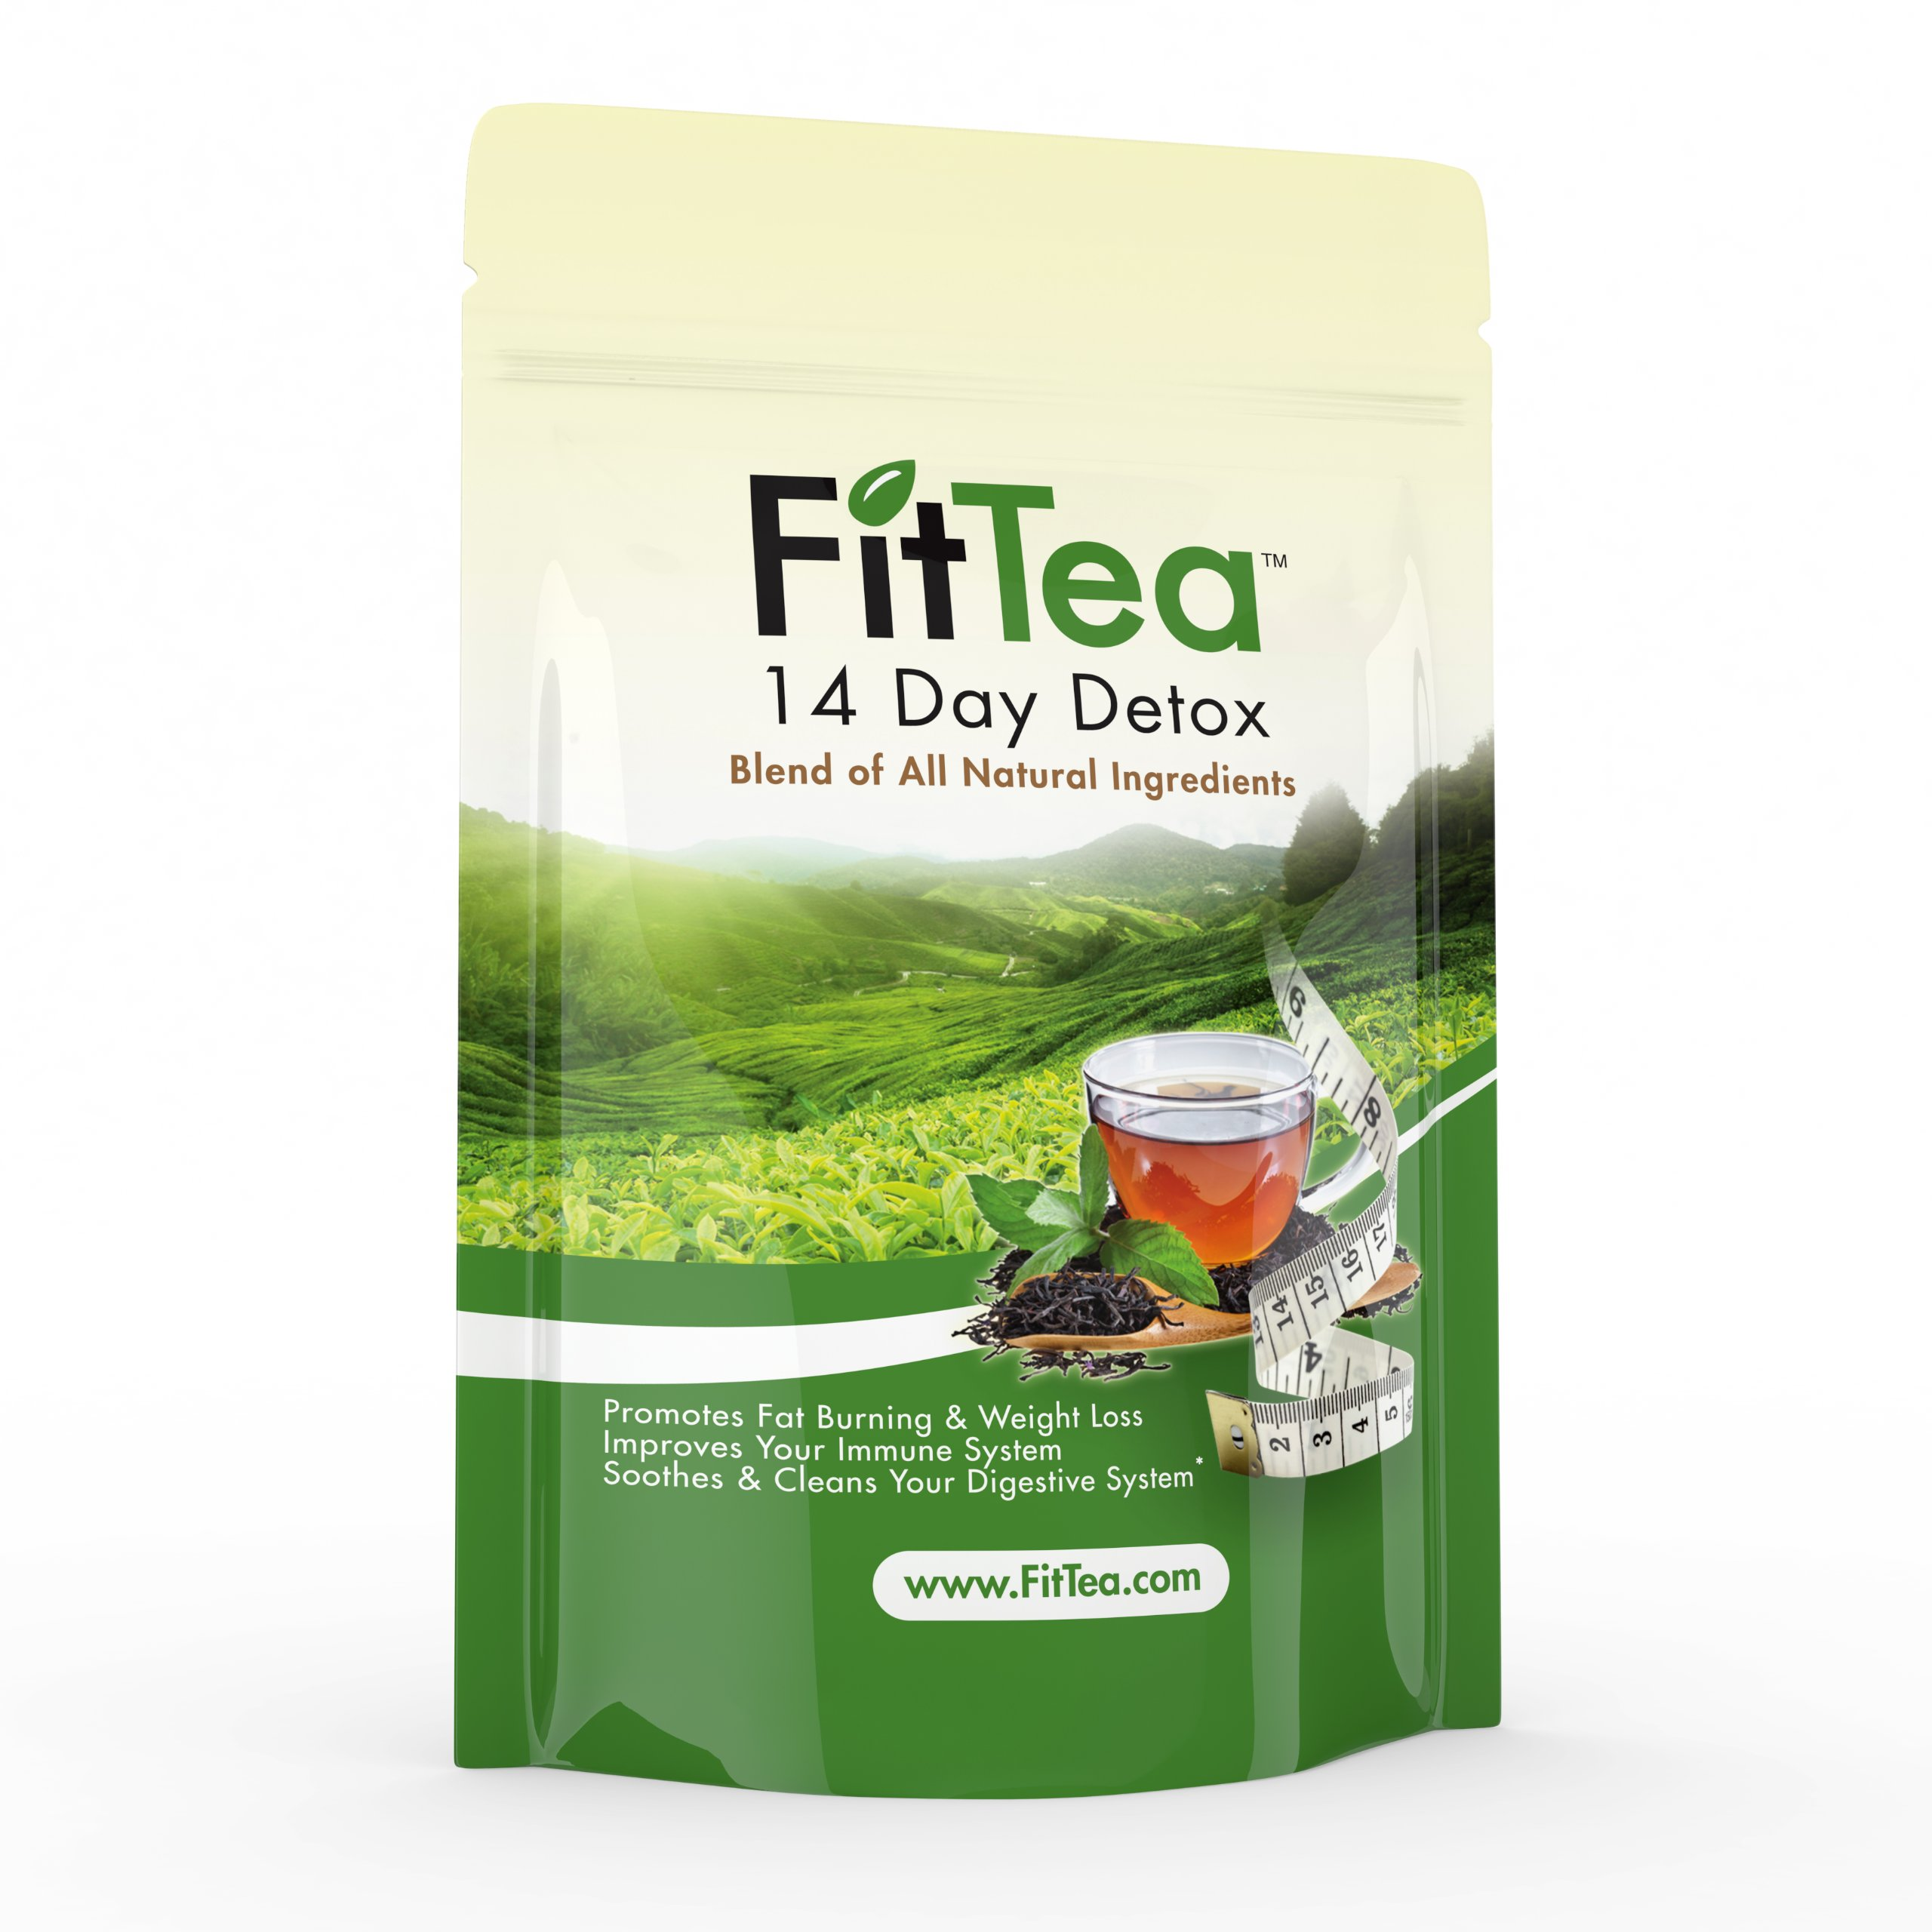 Fit Tea 14 Day Detox Herbal Weight Loss Tea- Natural Weight Loss, Body Cleanse and Appetite Control by Fit Tea